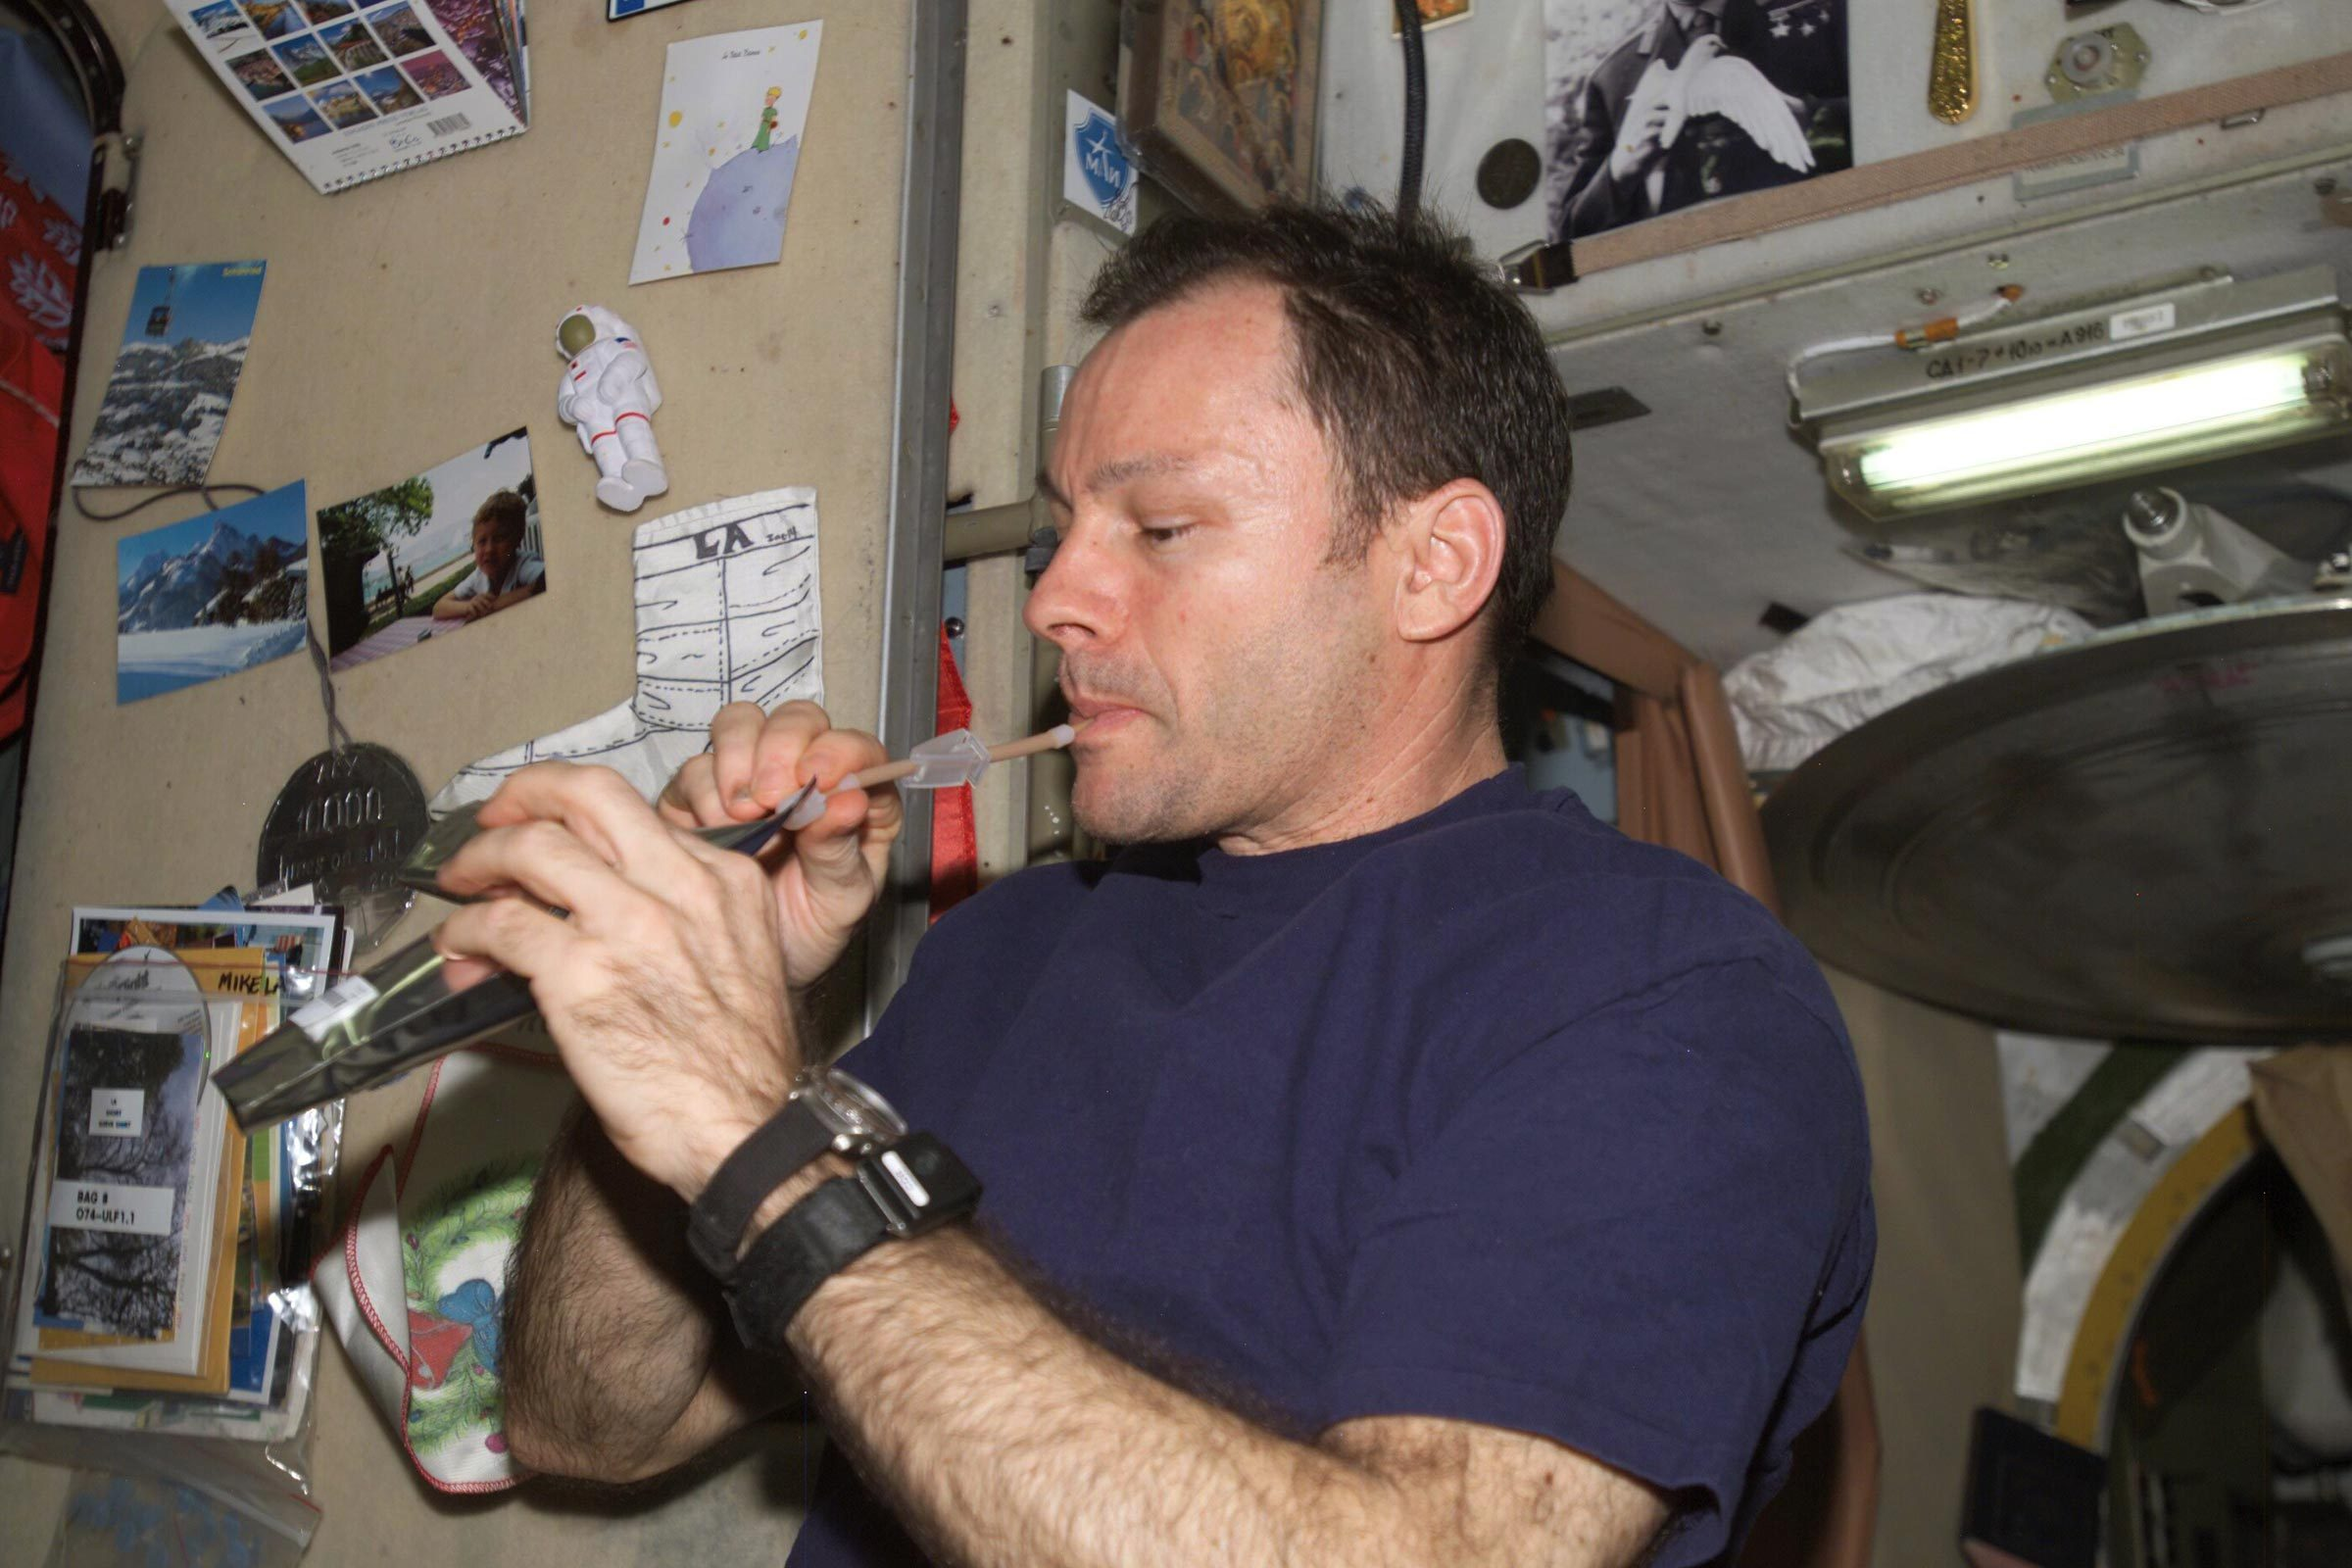 Astronaut Michael E. Lopez-Alegria, Expedition 14 commander and NASA space station science officer, drinks a beverage in the Zvezda Service Module of the International Space Station.